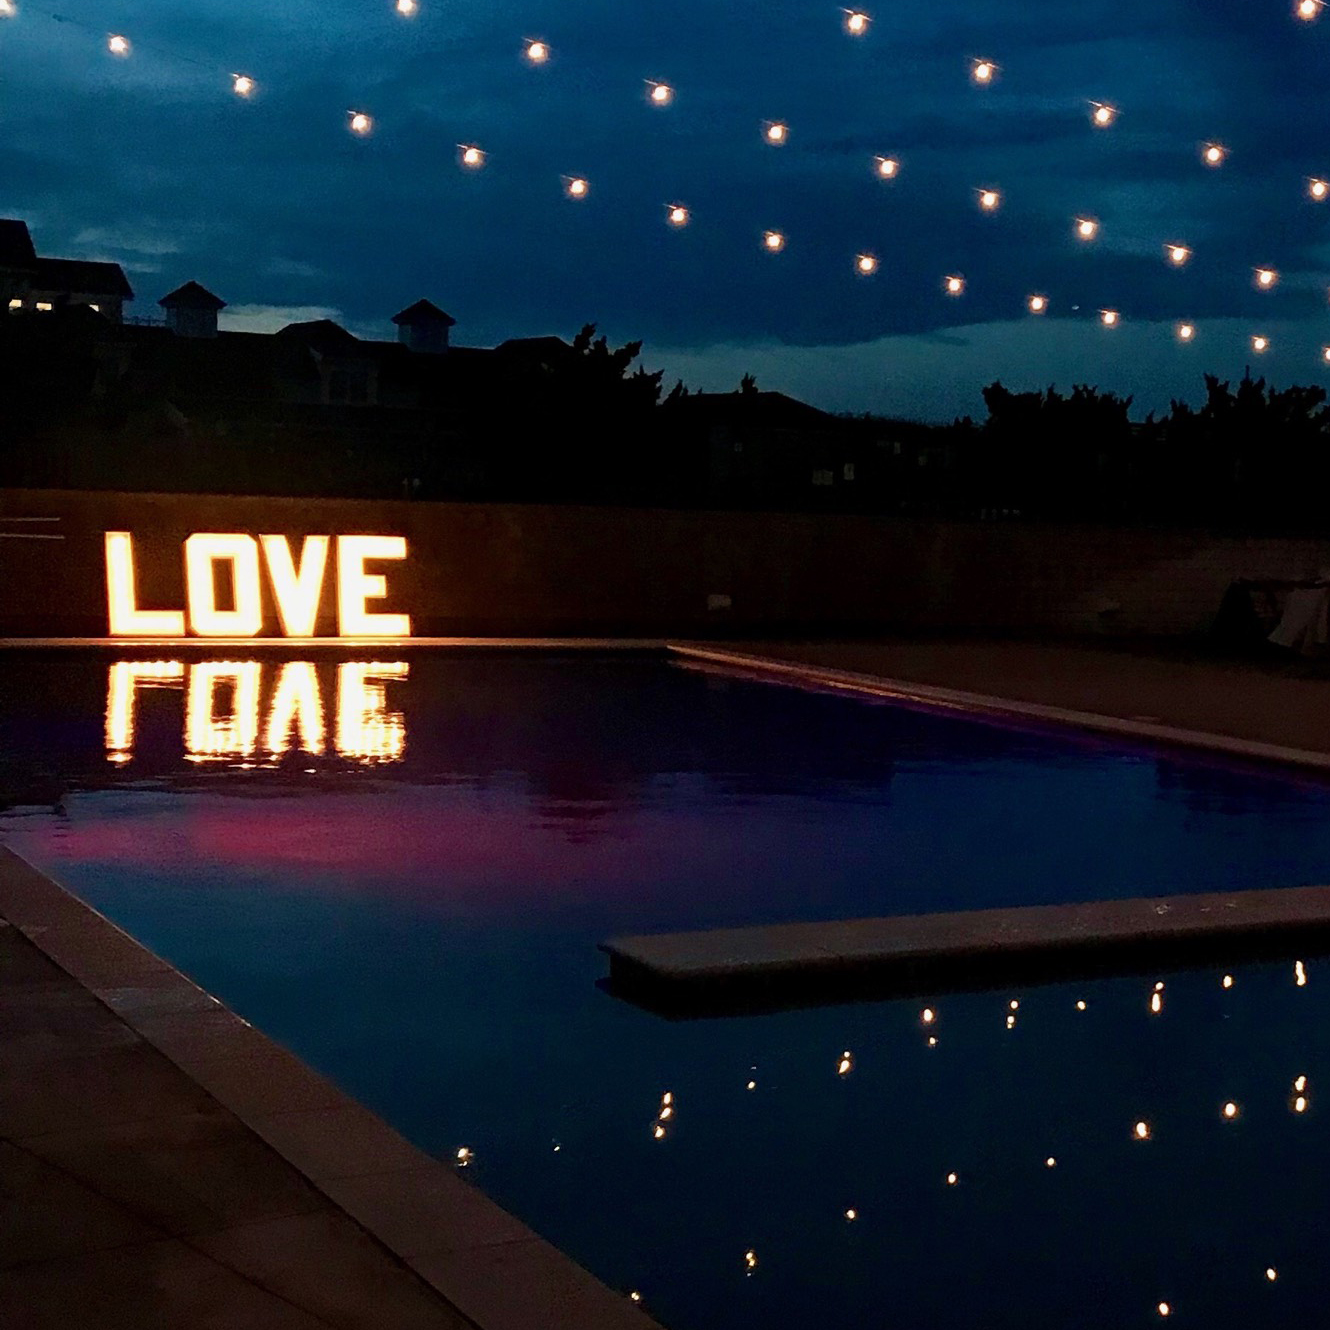 LOVE Sign Renee Landry Events Wedding Rentals Lighting Packages Outer Banks.jpg